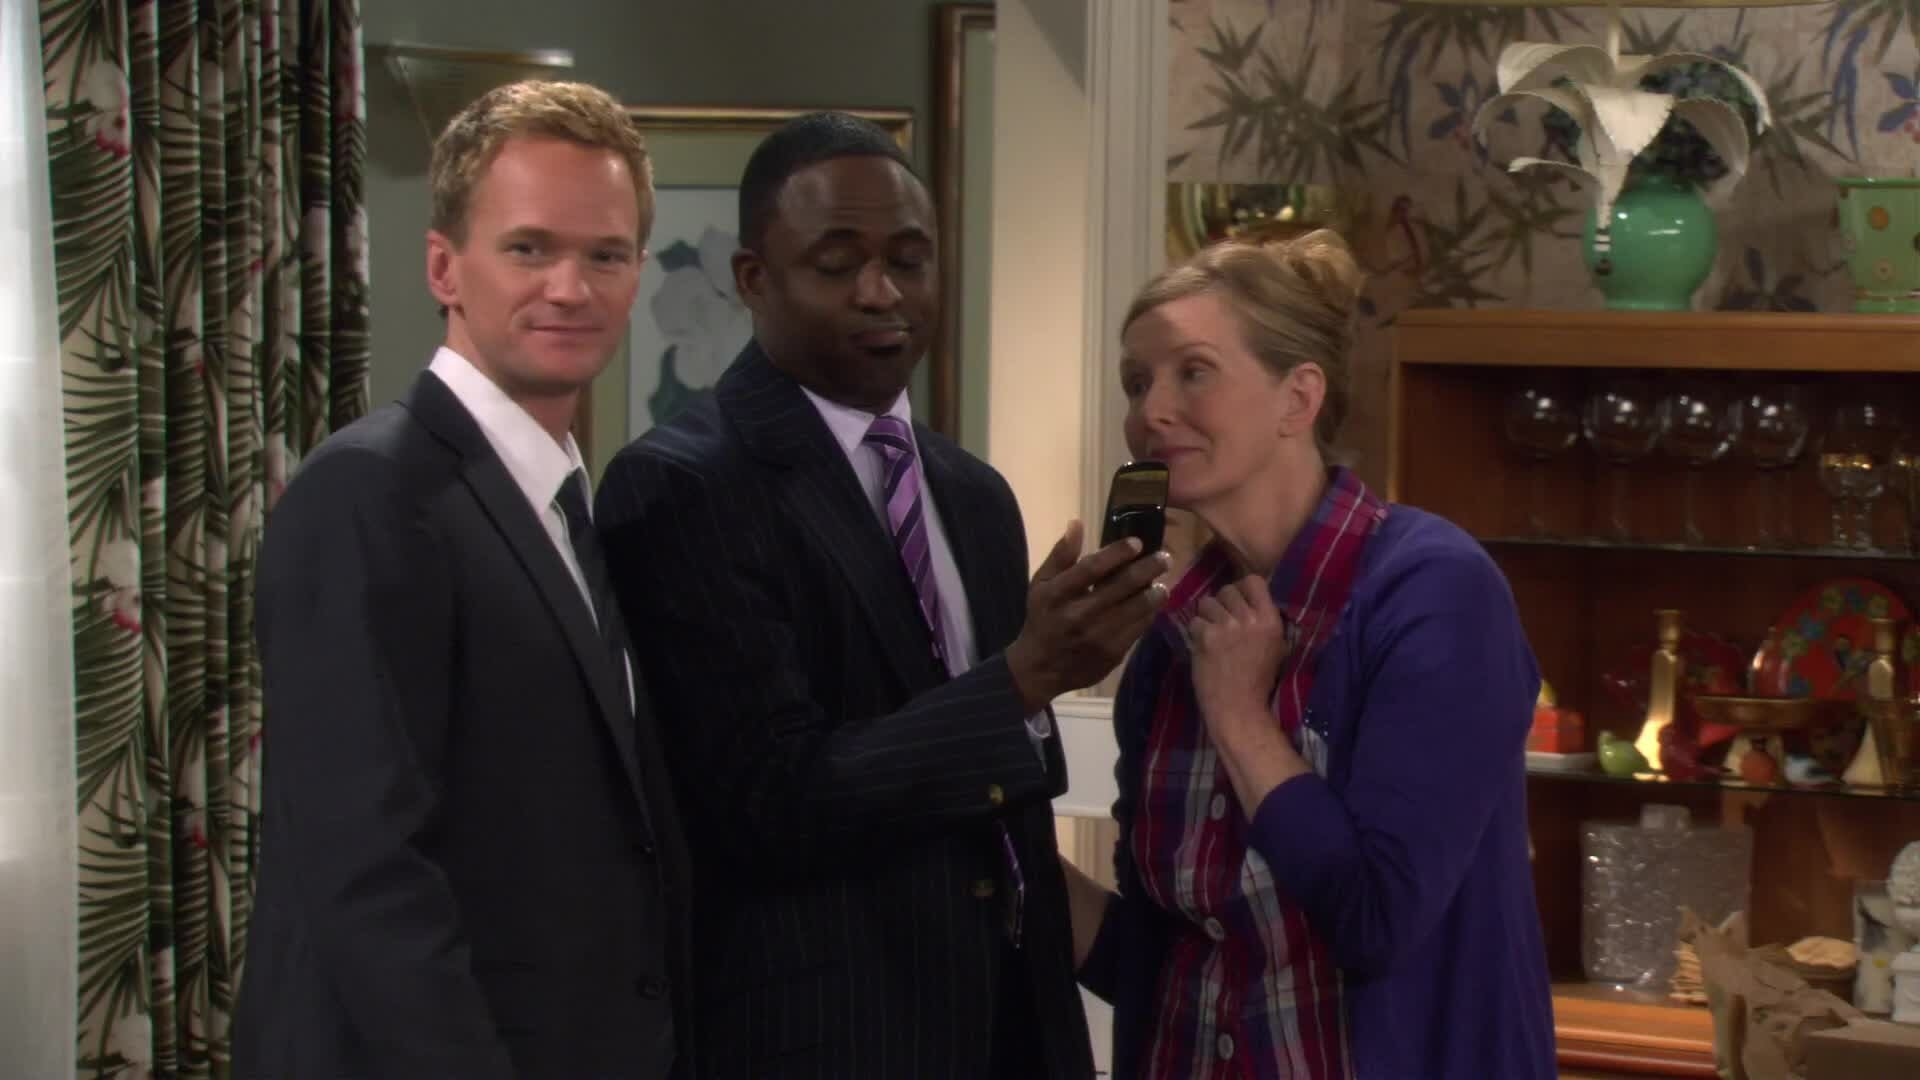 Barney and his brother, James find out their potential father